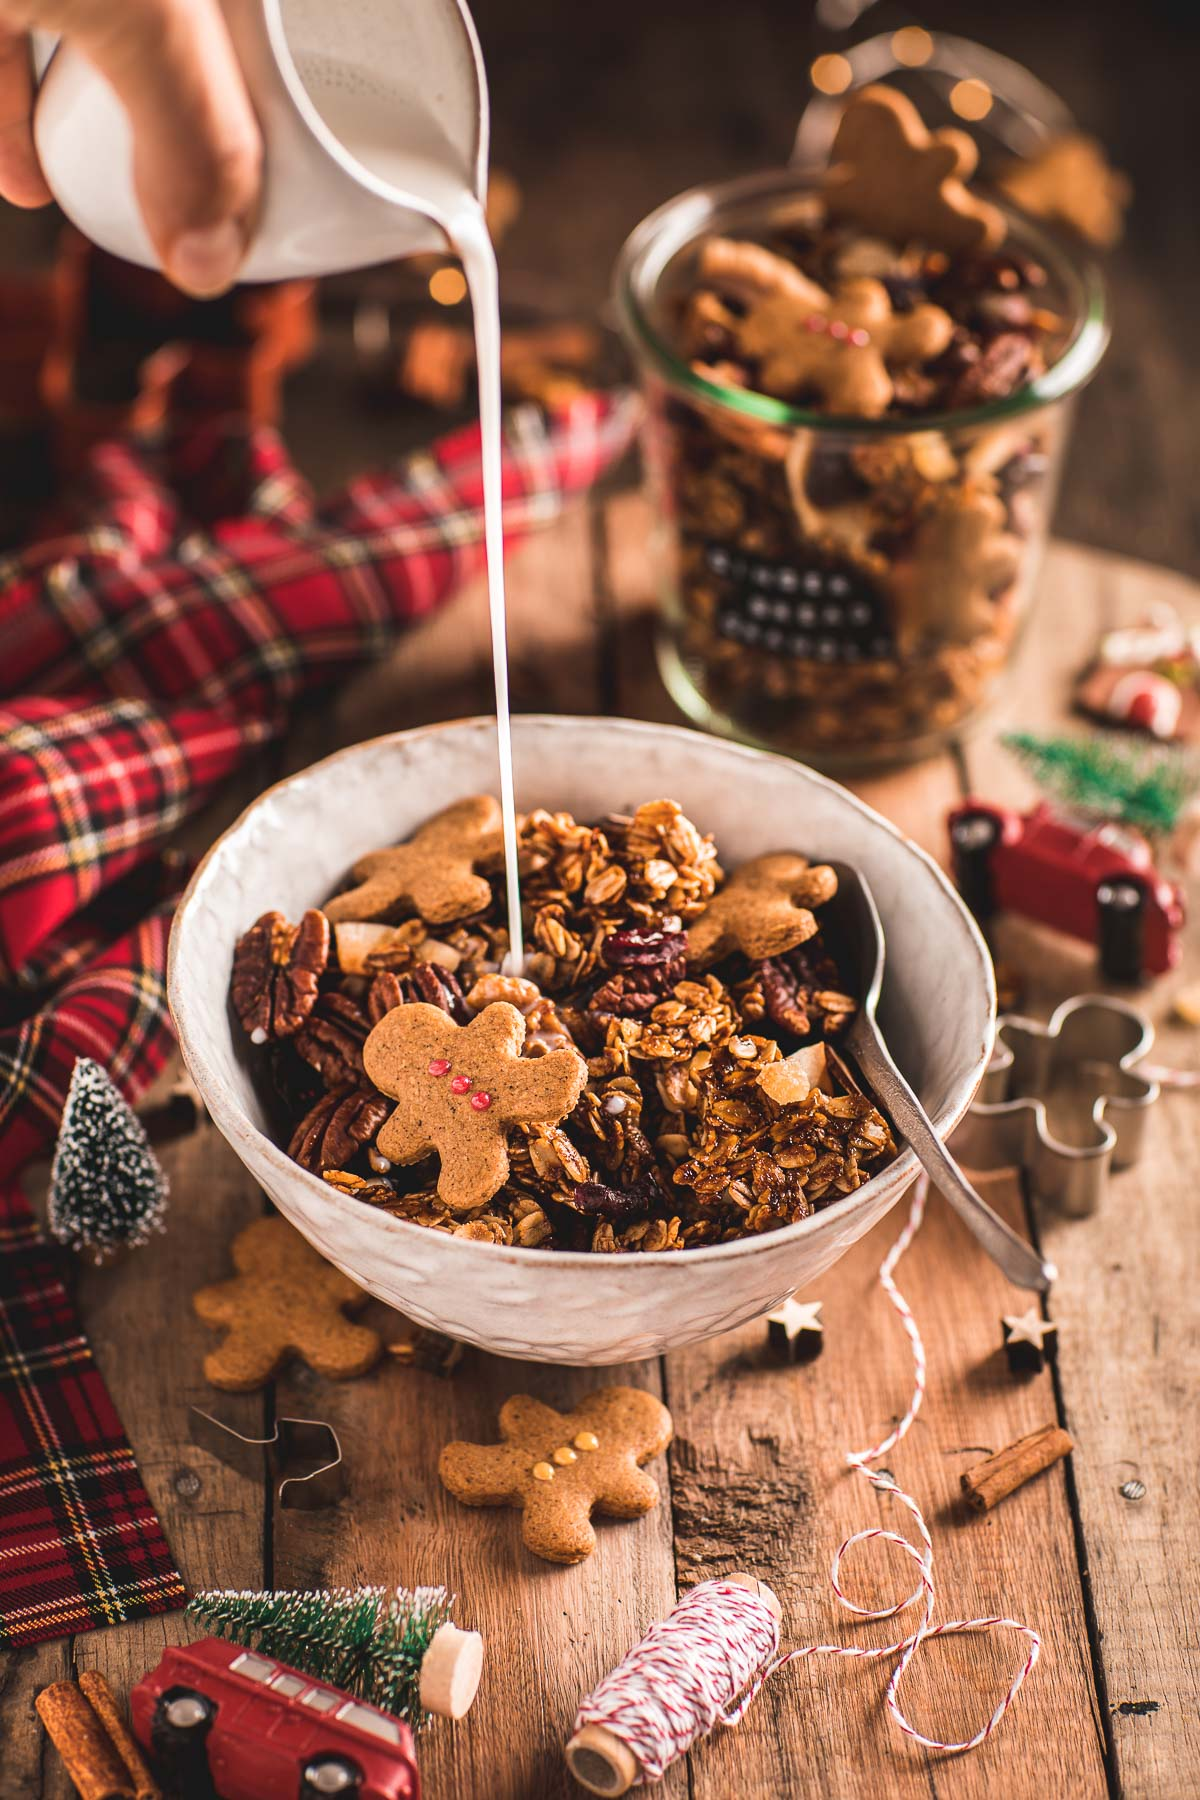 Gingerbread Granola bowl for breakfast Crispy sweet and spiced recipe #vegan #glutenfree ricetta granola pan di zenzero colazione sana idea regalo di Natale diy Christmas gift idea